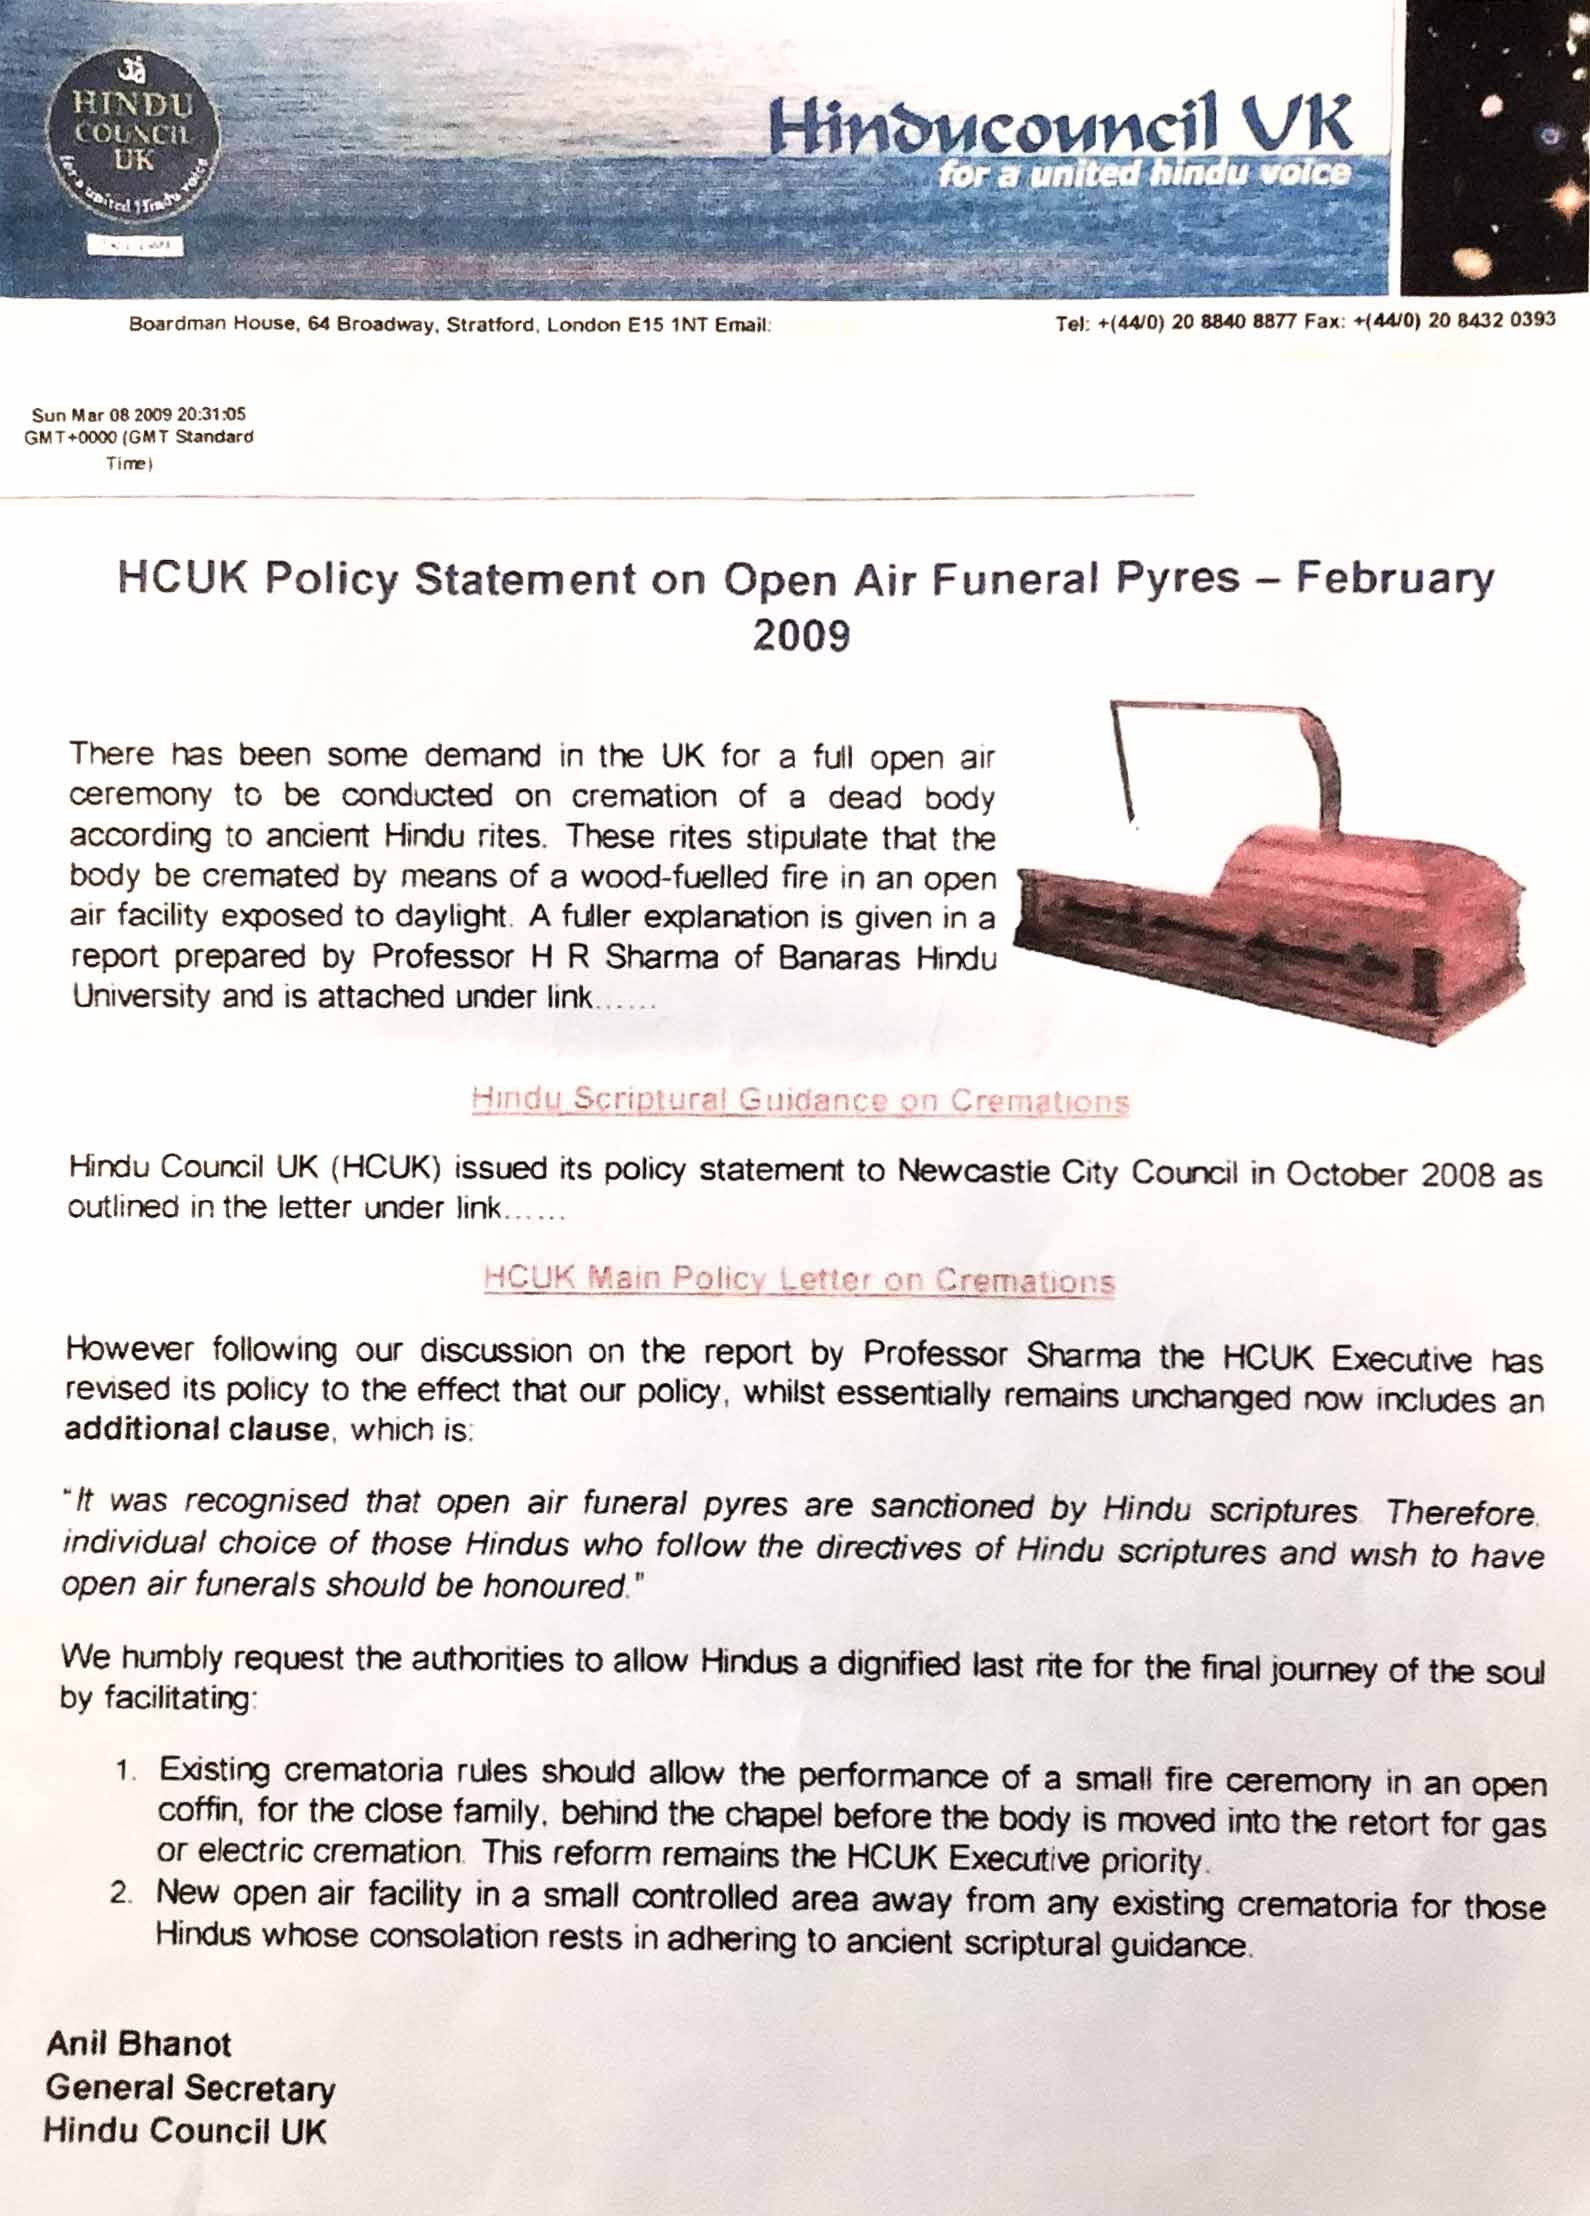 HCUK Policy Statement on Open Air Funeral Pyres